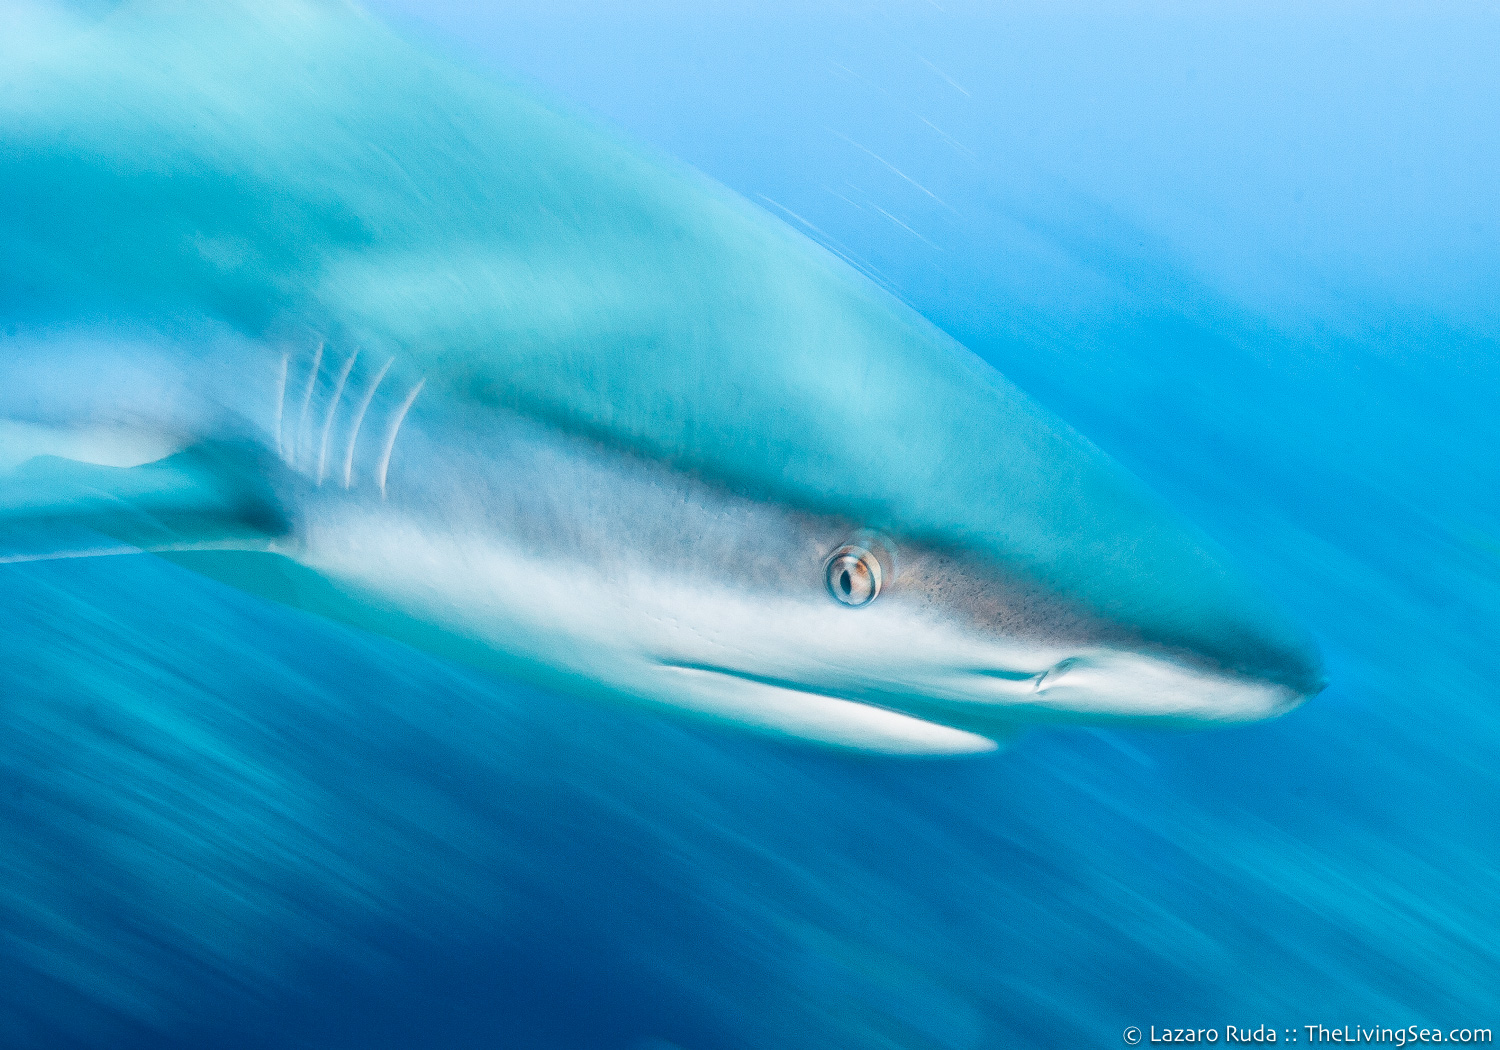 Caribbean reef shark: Carcharhinus perezi, Cartilaginous Fishes: Chondrichthyes, Fishes, Ground Sharks: Carcharhiniformes, Marine Life, Requiem Sharks: Carcharhindidae, Sharks, cat-shark, copyrighted, horizontal, landscape, marine, ocean, underwater, underwater photo